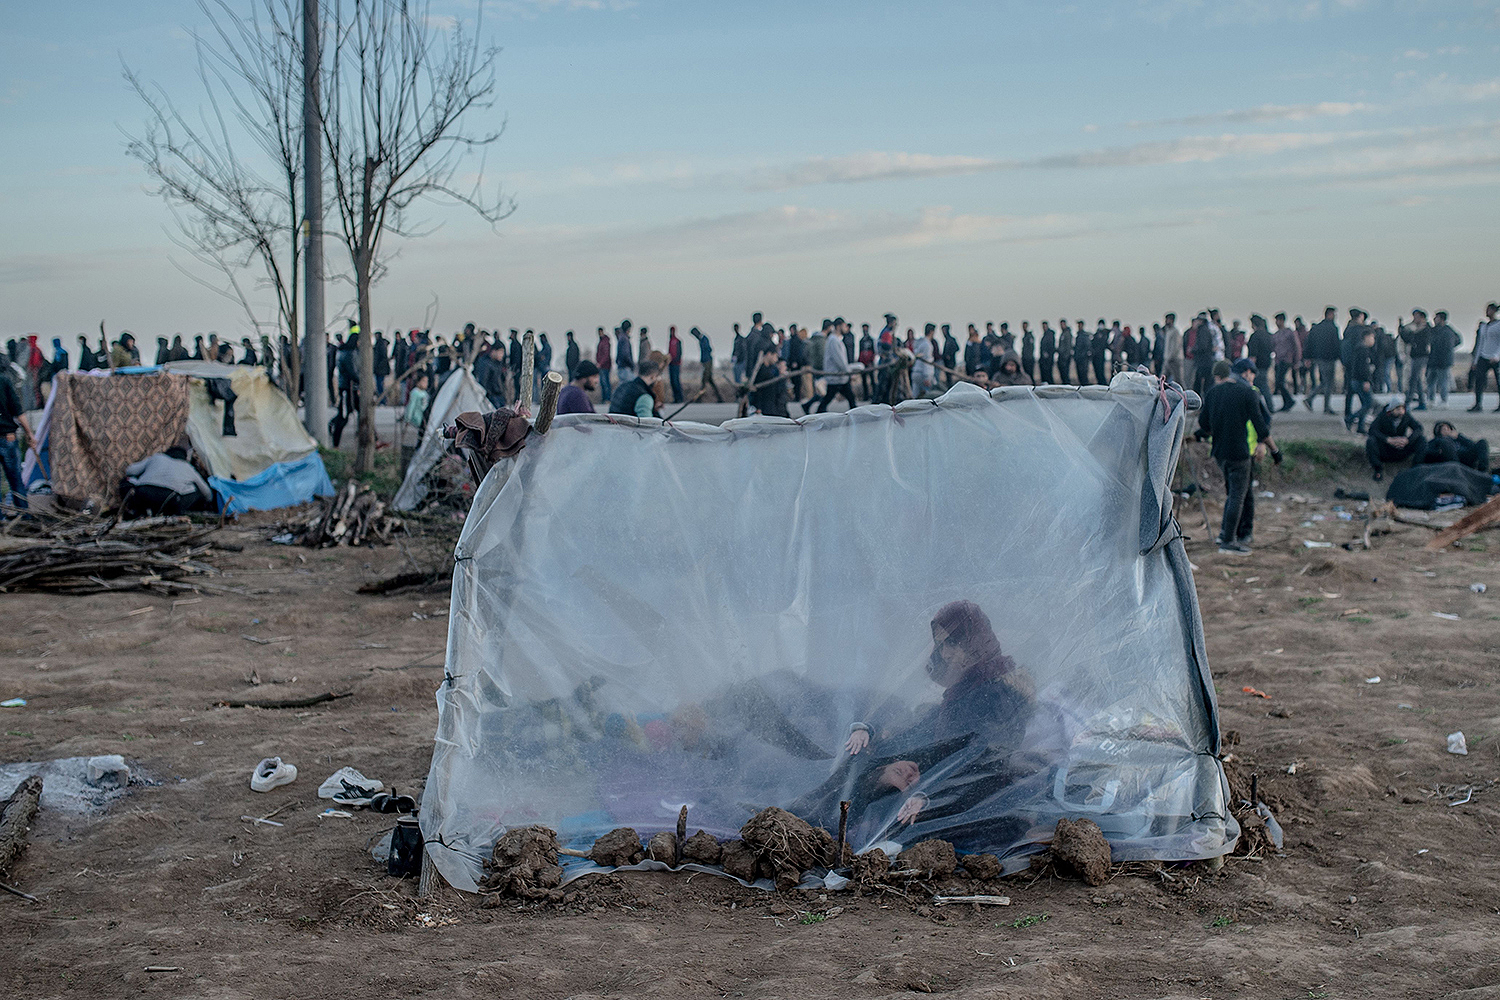 A Syrian woman sits in a tent with her son as others wait for food distribution March 3 in Edirne, Turkey, near the Pazarkule border crossing to Greece.  BULENT KILIC/AFP via Getty Images